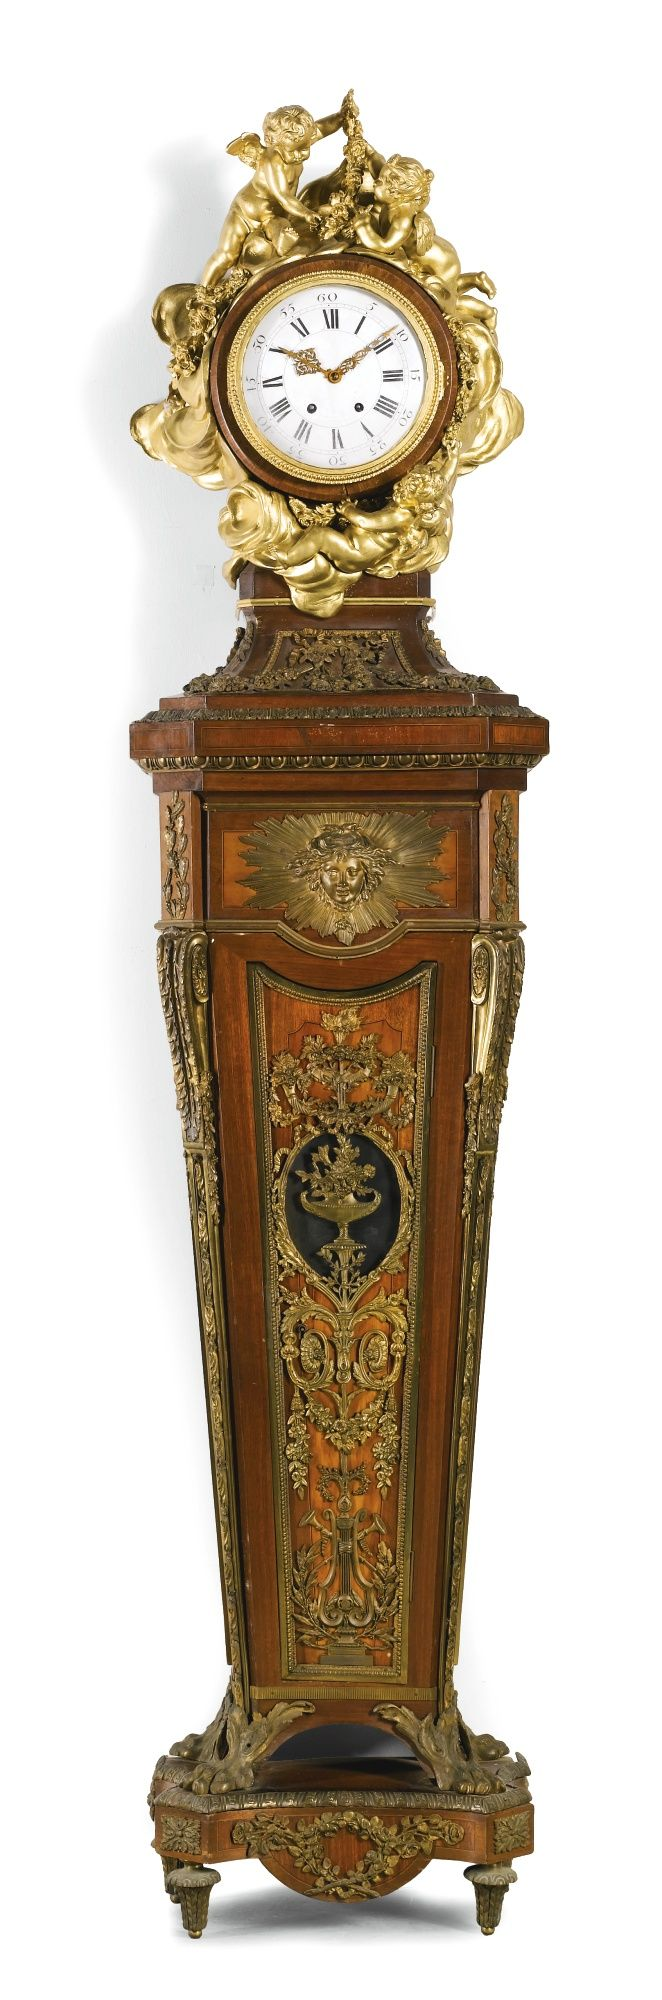 A Louis XVI-style gilt-mounted and kingwood inlaid mahogany pedestal clock after Jean-Henri Reisener, French, circa 1910 | Lot | Sotheby's